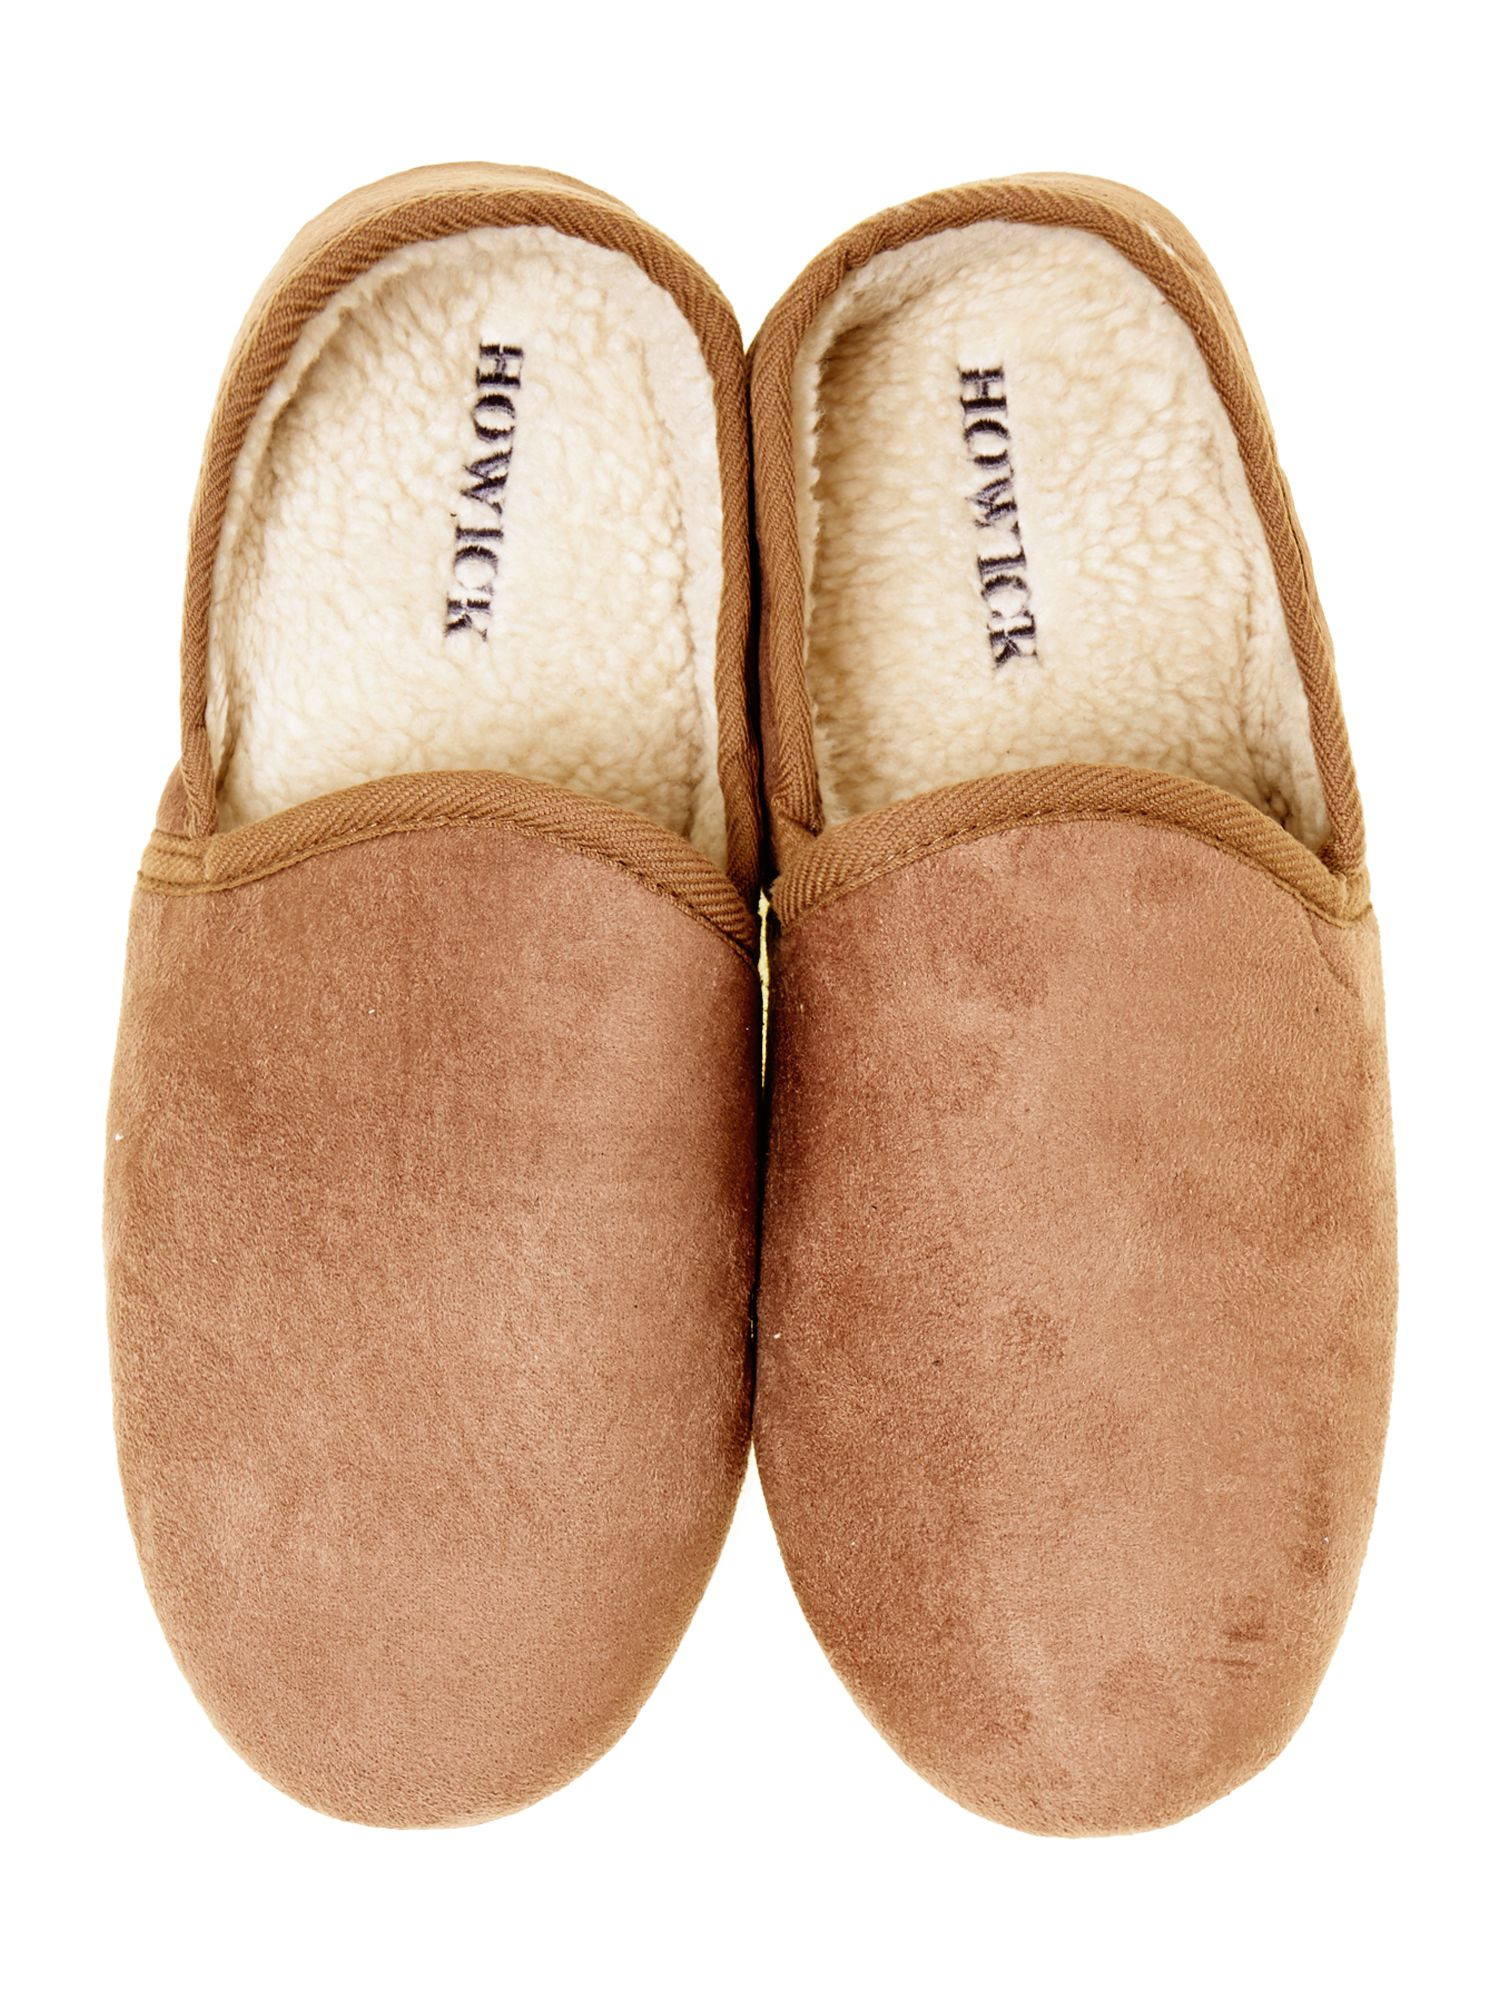 Microsuede full back slipper